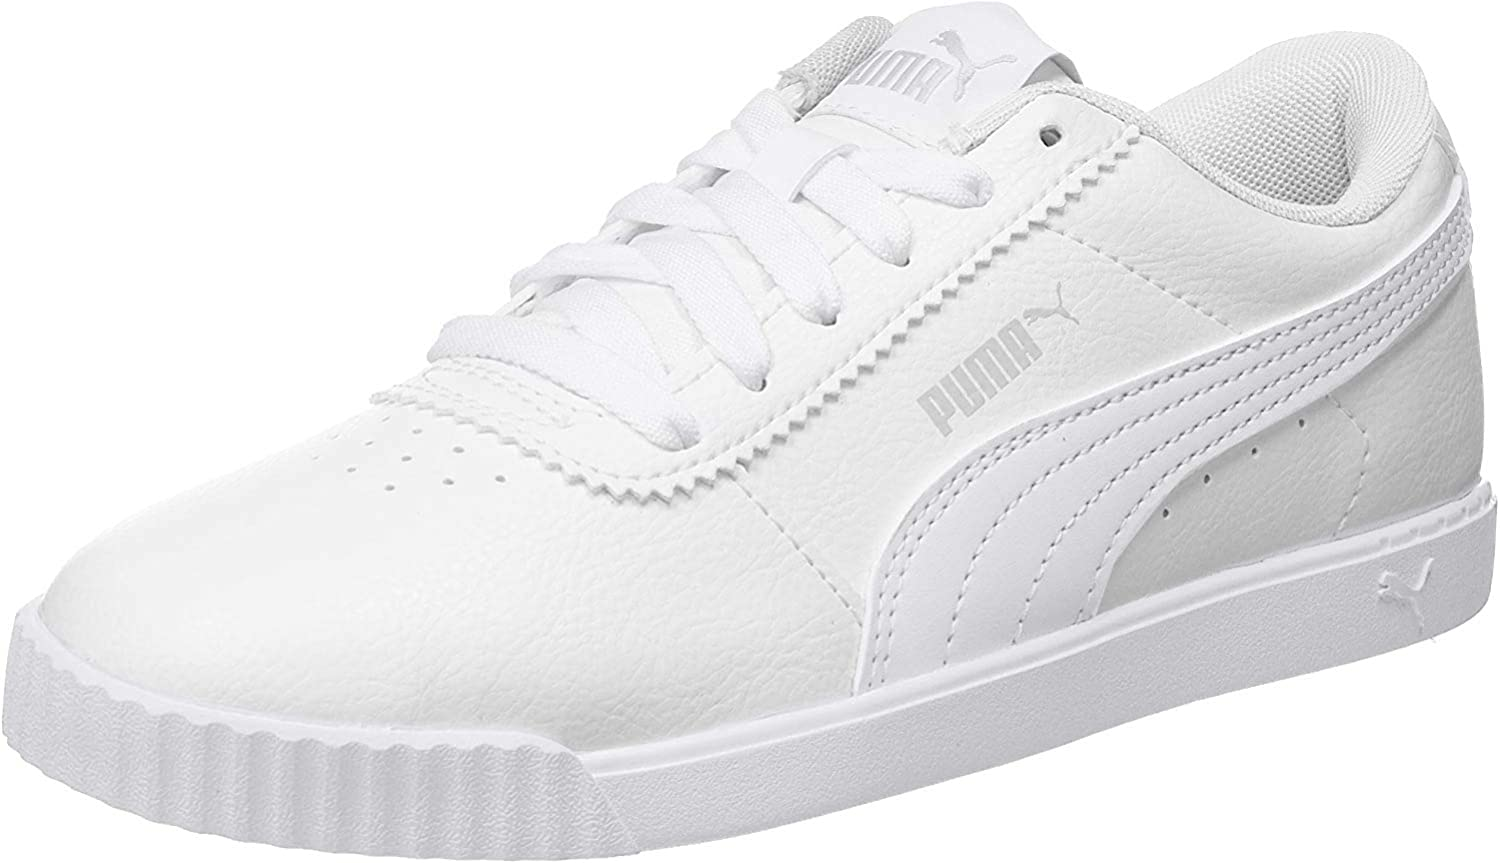 PUMA Women's Low-Top Don't Max 60% OFF miss the campaign Sneaker Trainers